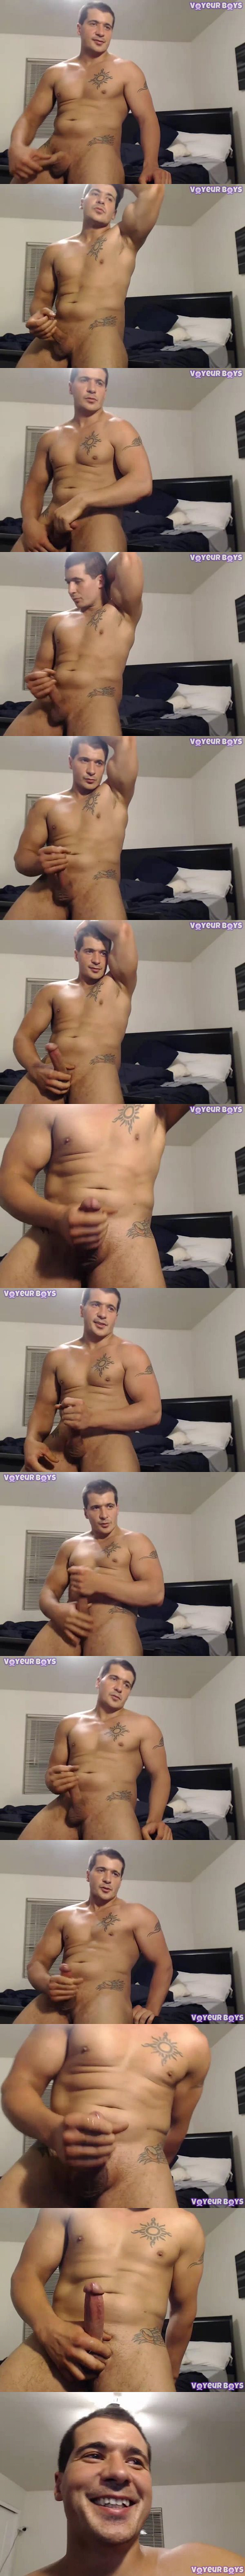 Damien Michaels and Jack Hunter side by side cumshow at Voyeurboys